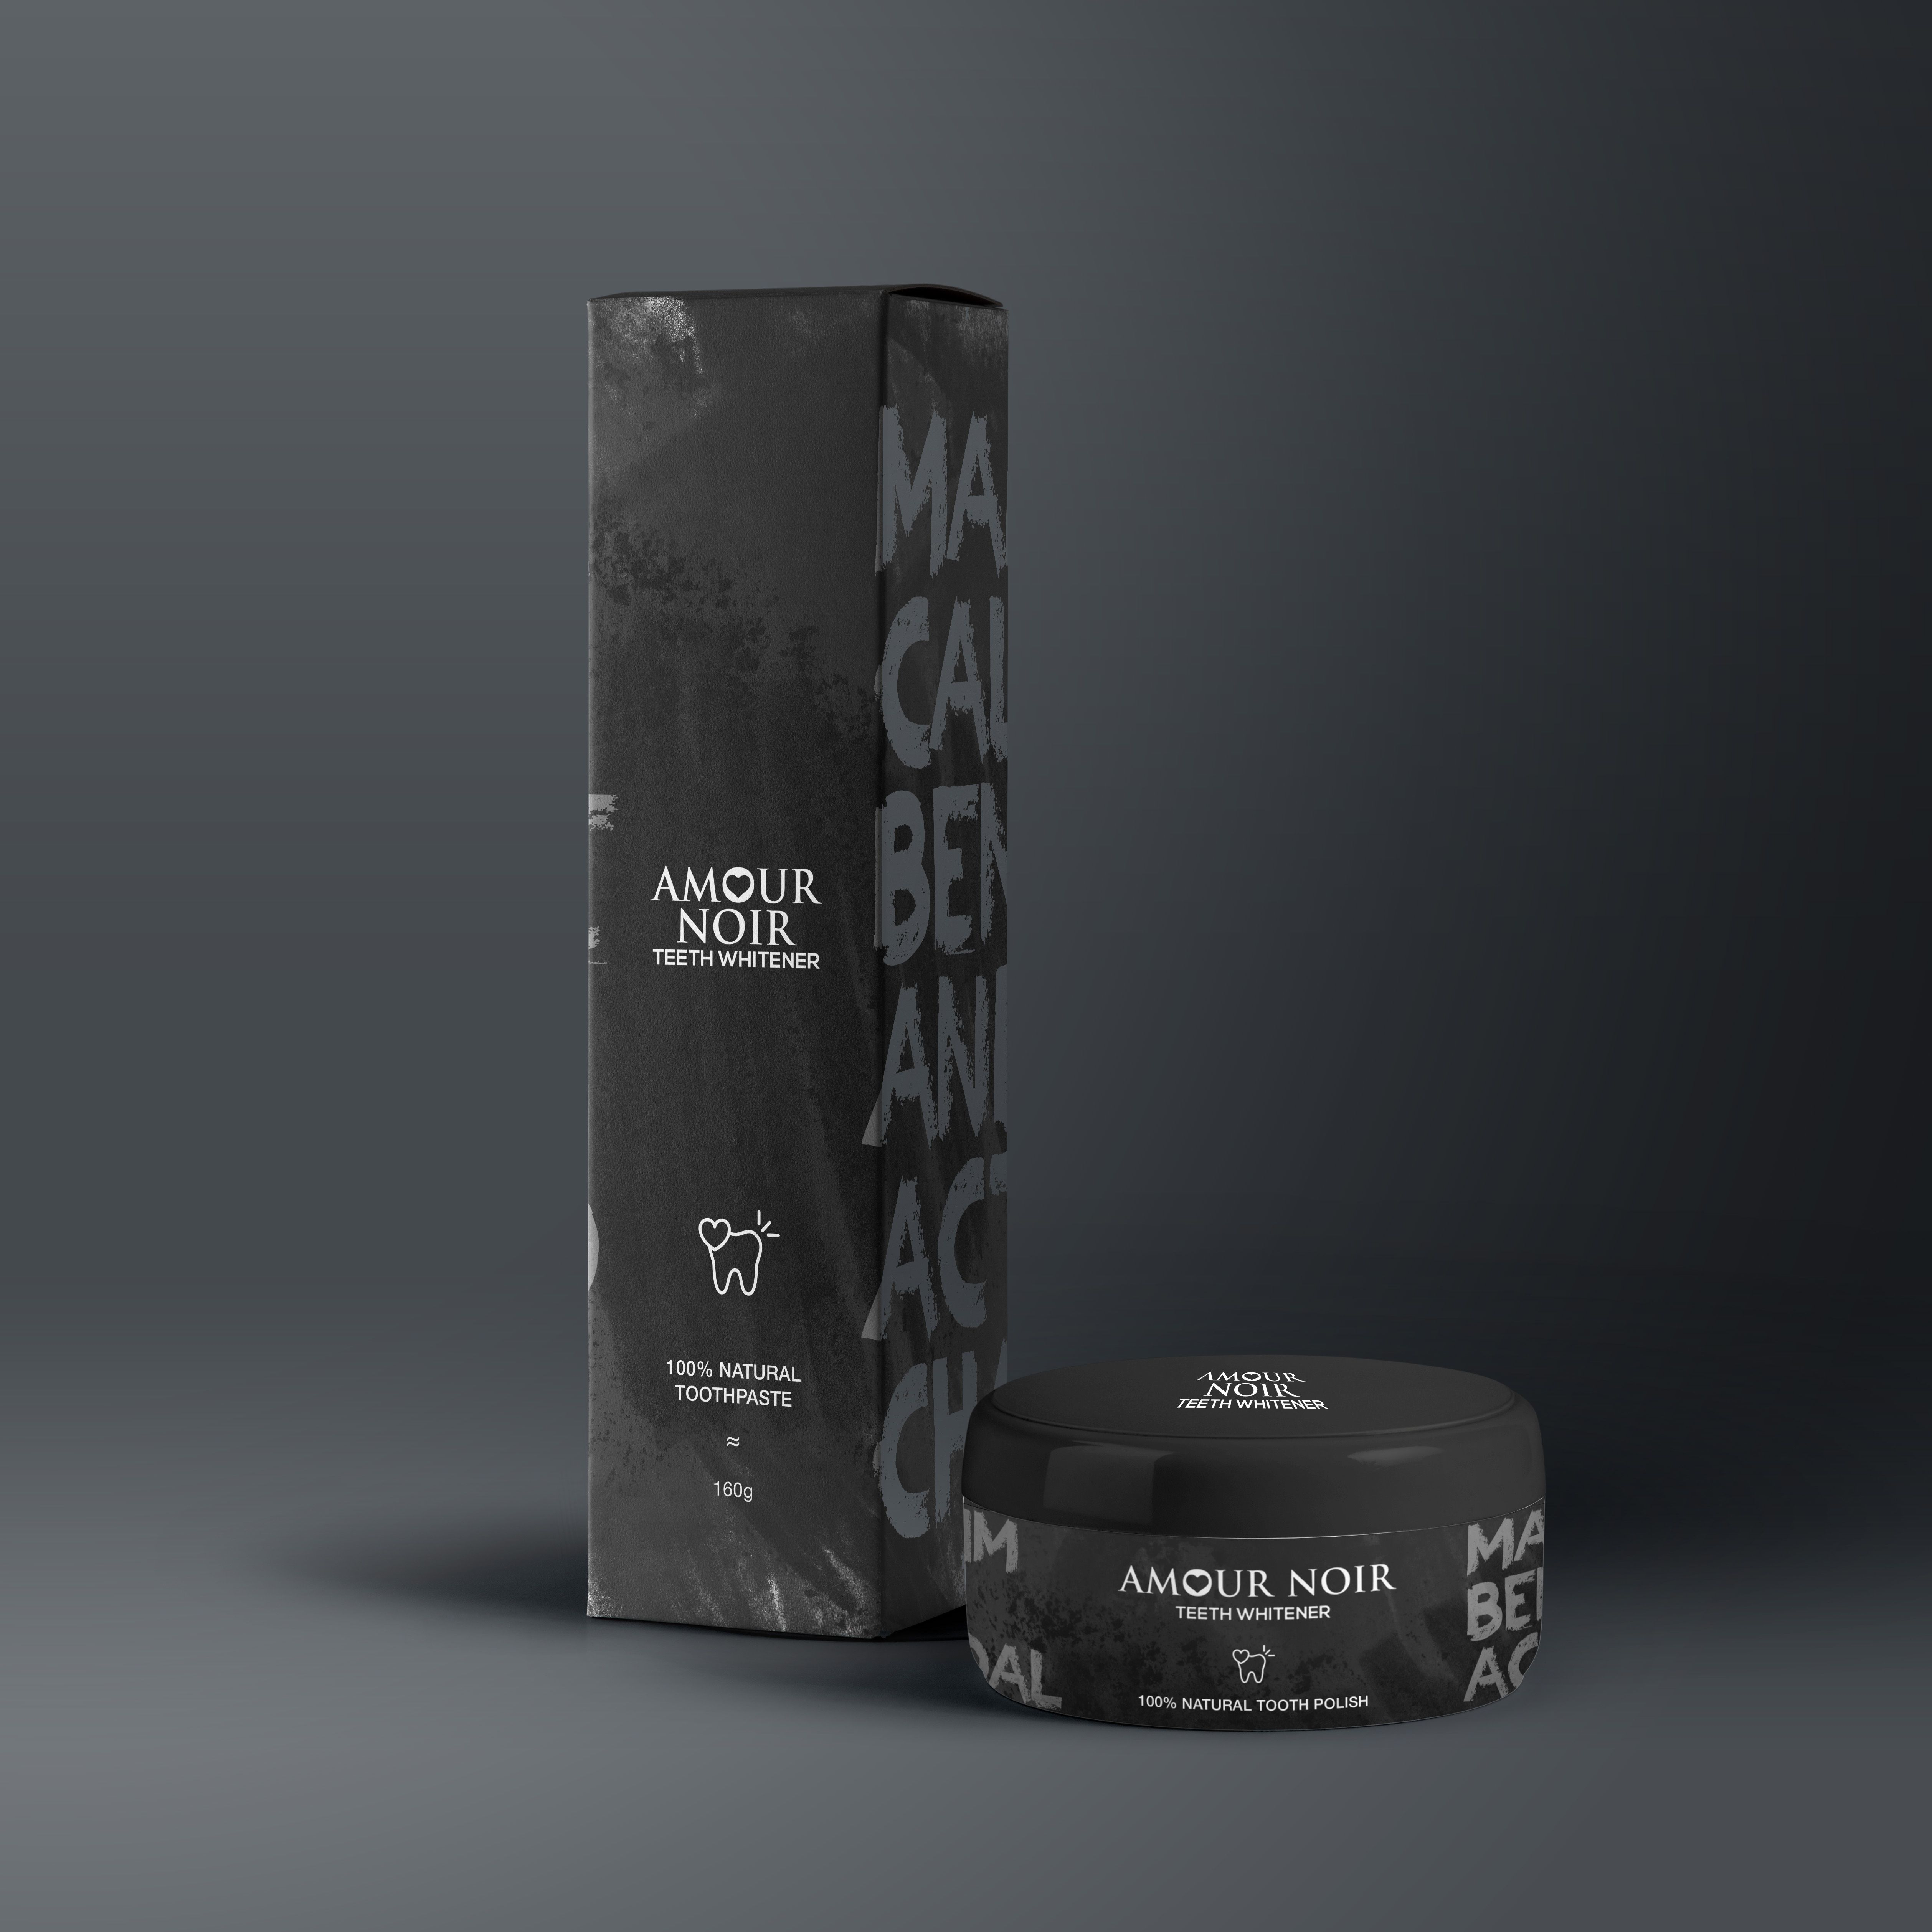 Our Concept For British Charcoal Toothpaste Brand Amour